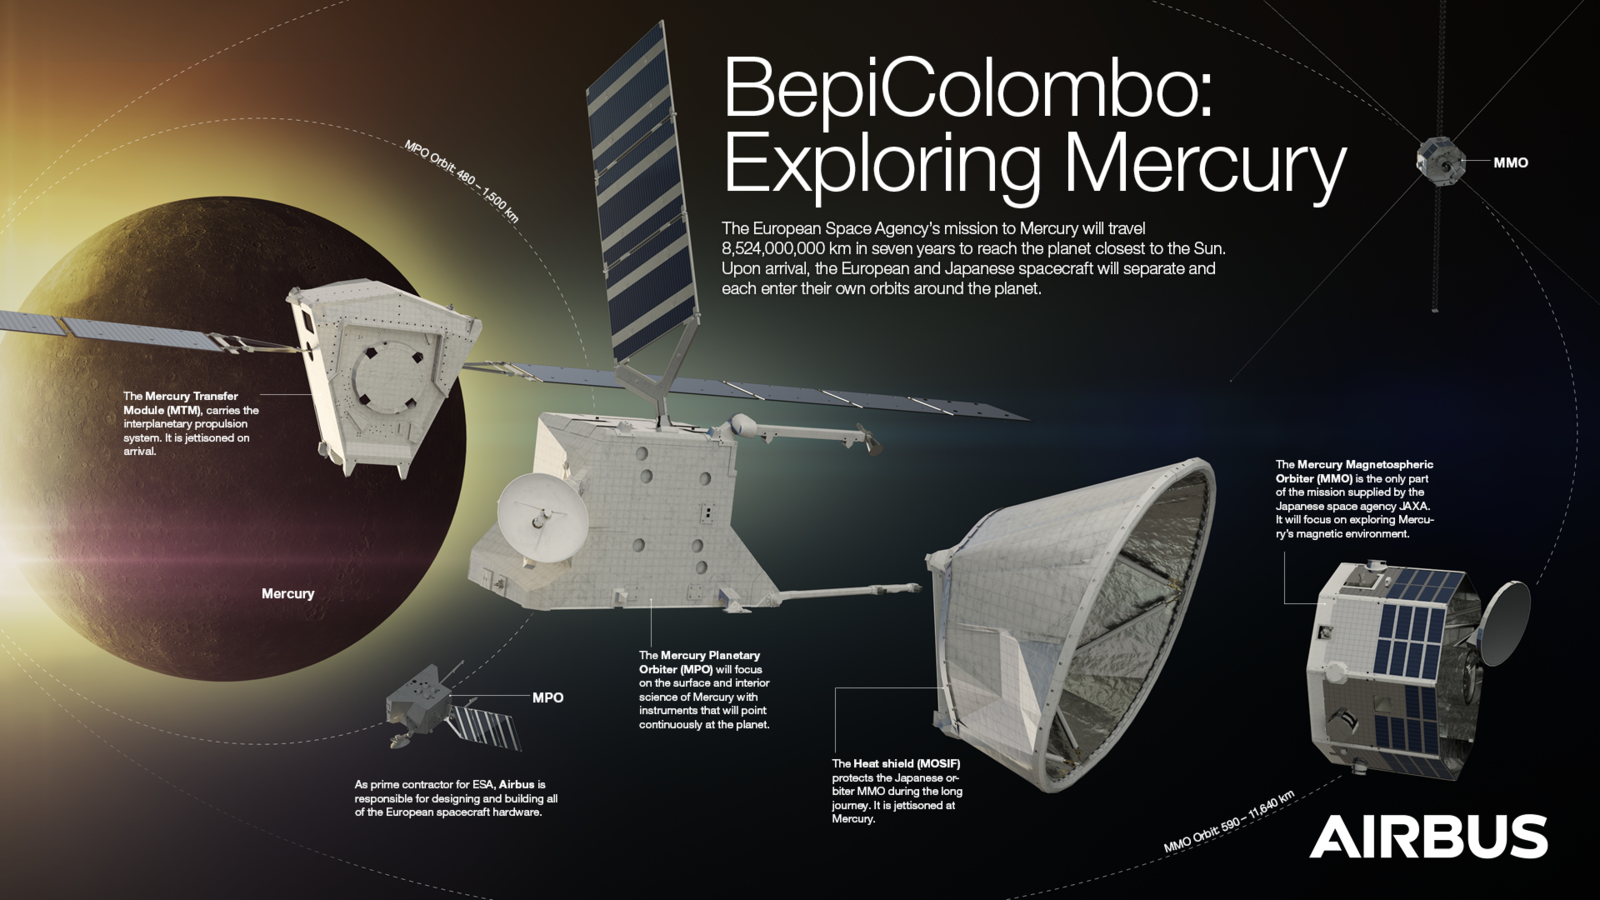 BepiColombo - Bepi Colombo - Spacecraft architecture - Sonde - Mercure - MPO - MOSIF - MTM - MMO